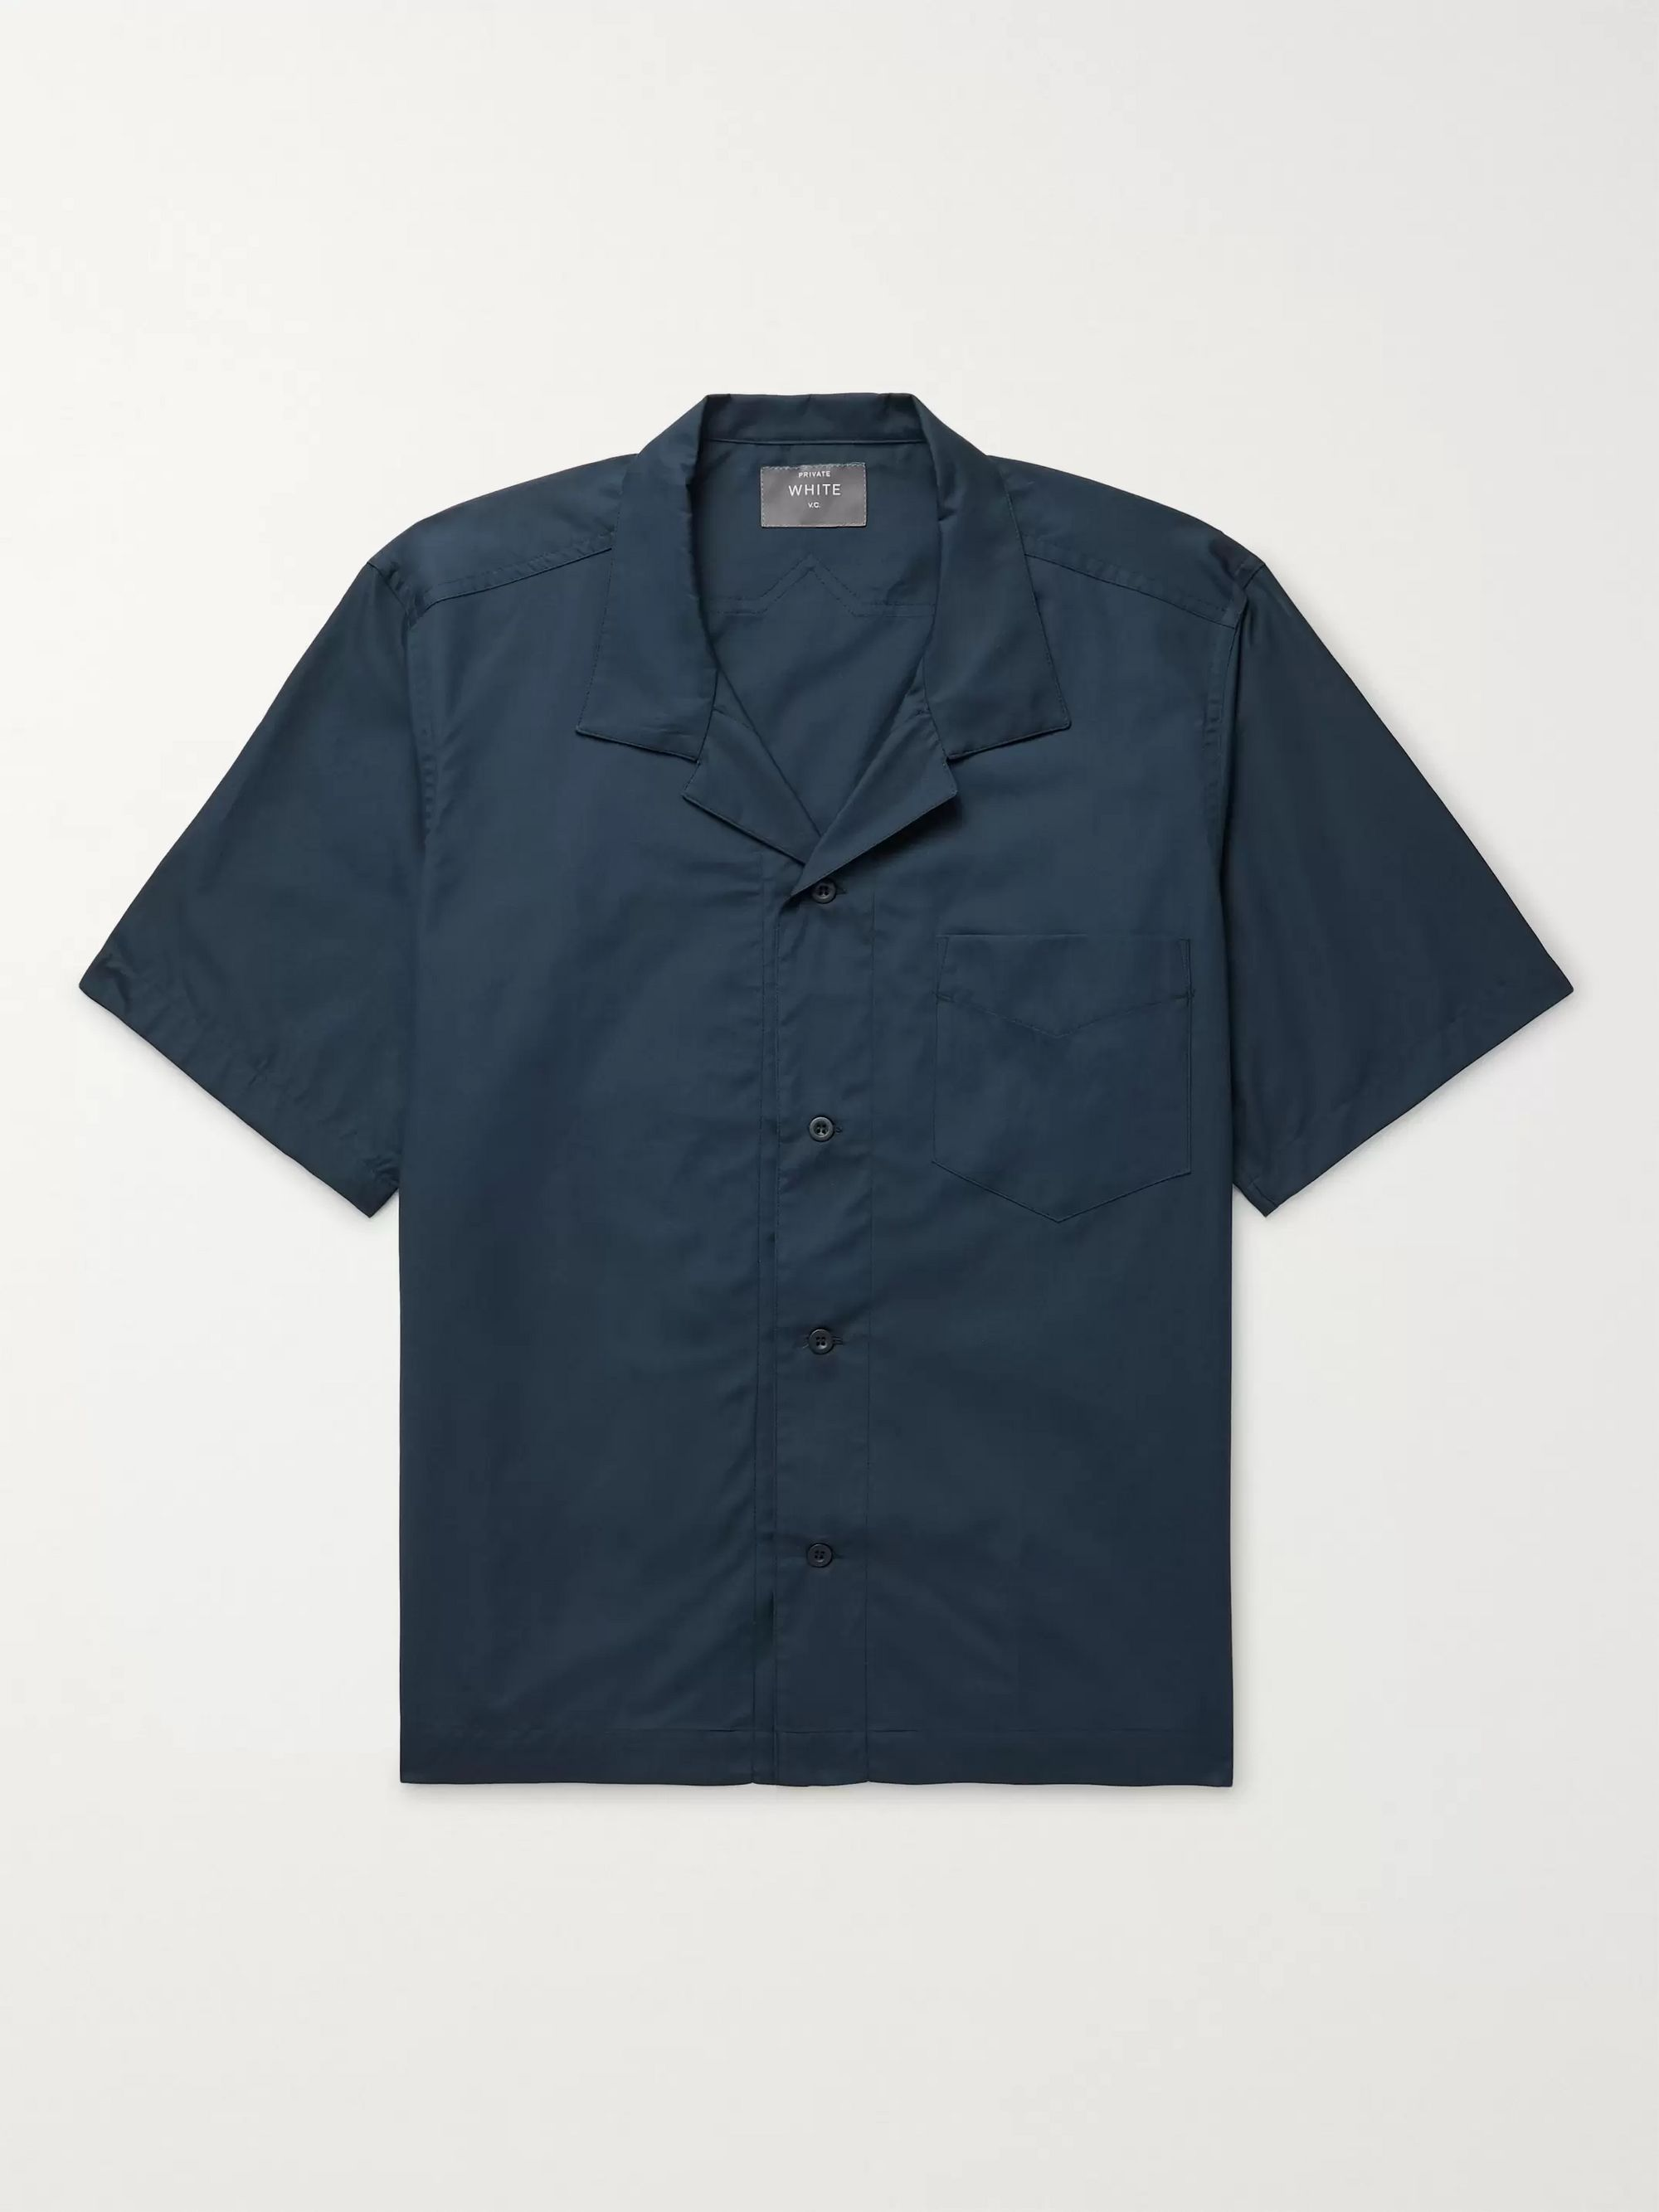 Private White V.C. Camp-Collar Cotton-Poplin Shirt